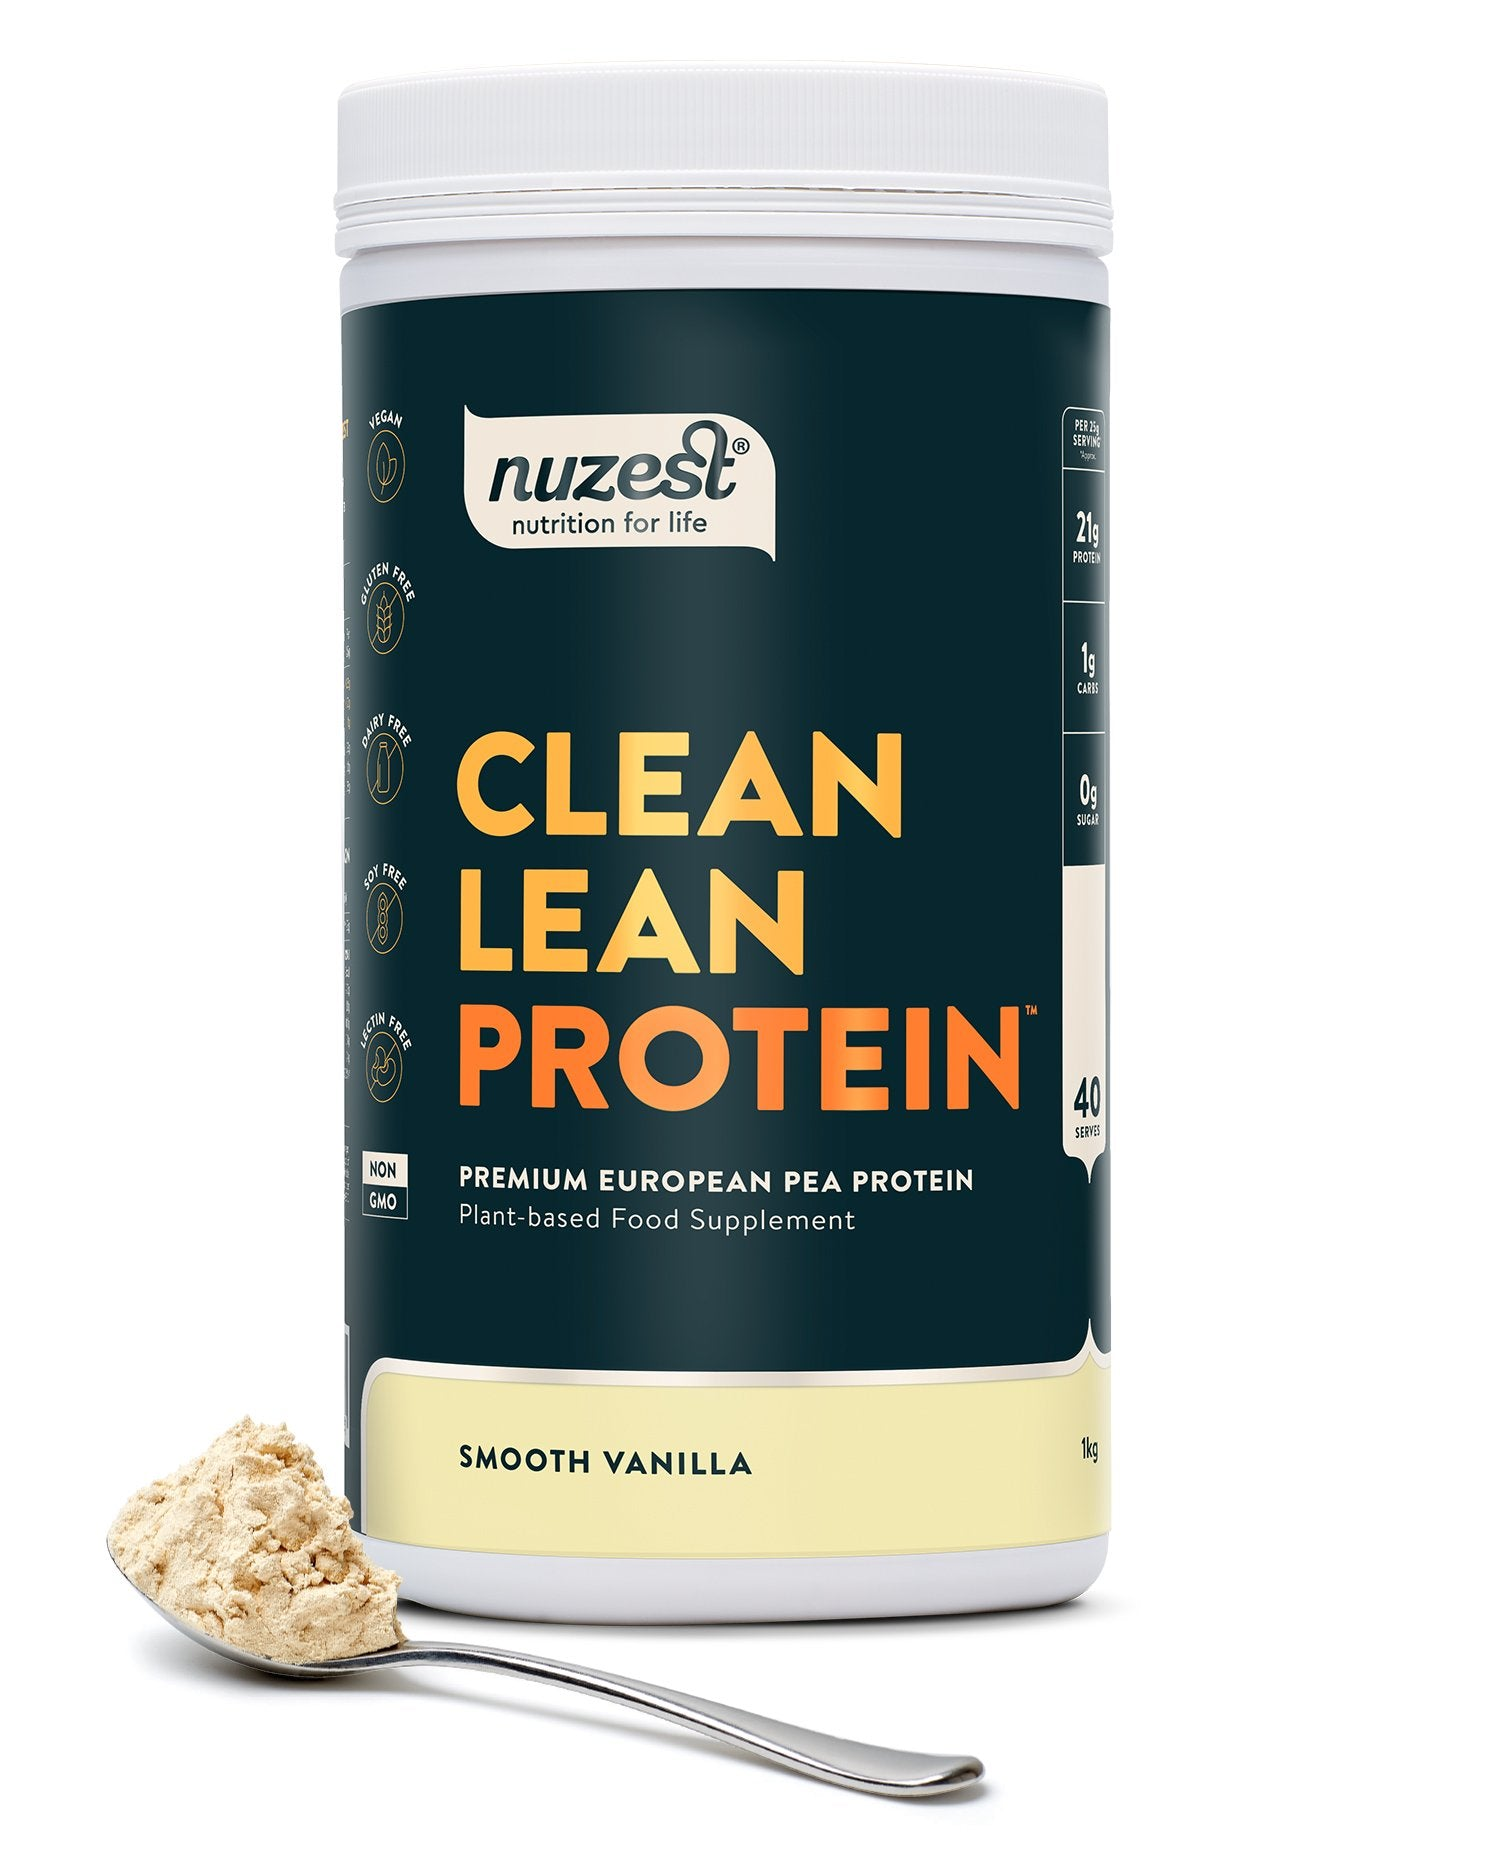 Clean Lean Protein Smooth Vanilla, Organic Pea Protein 1kg